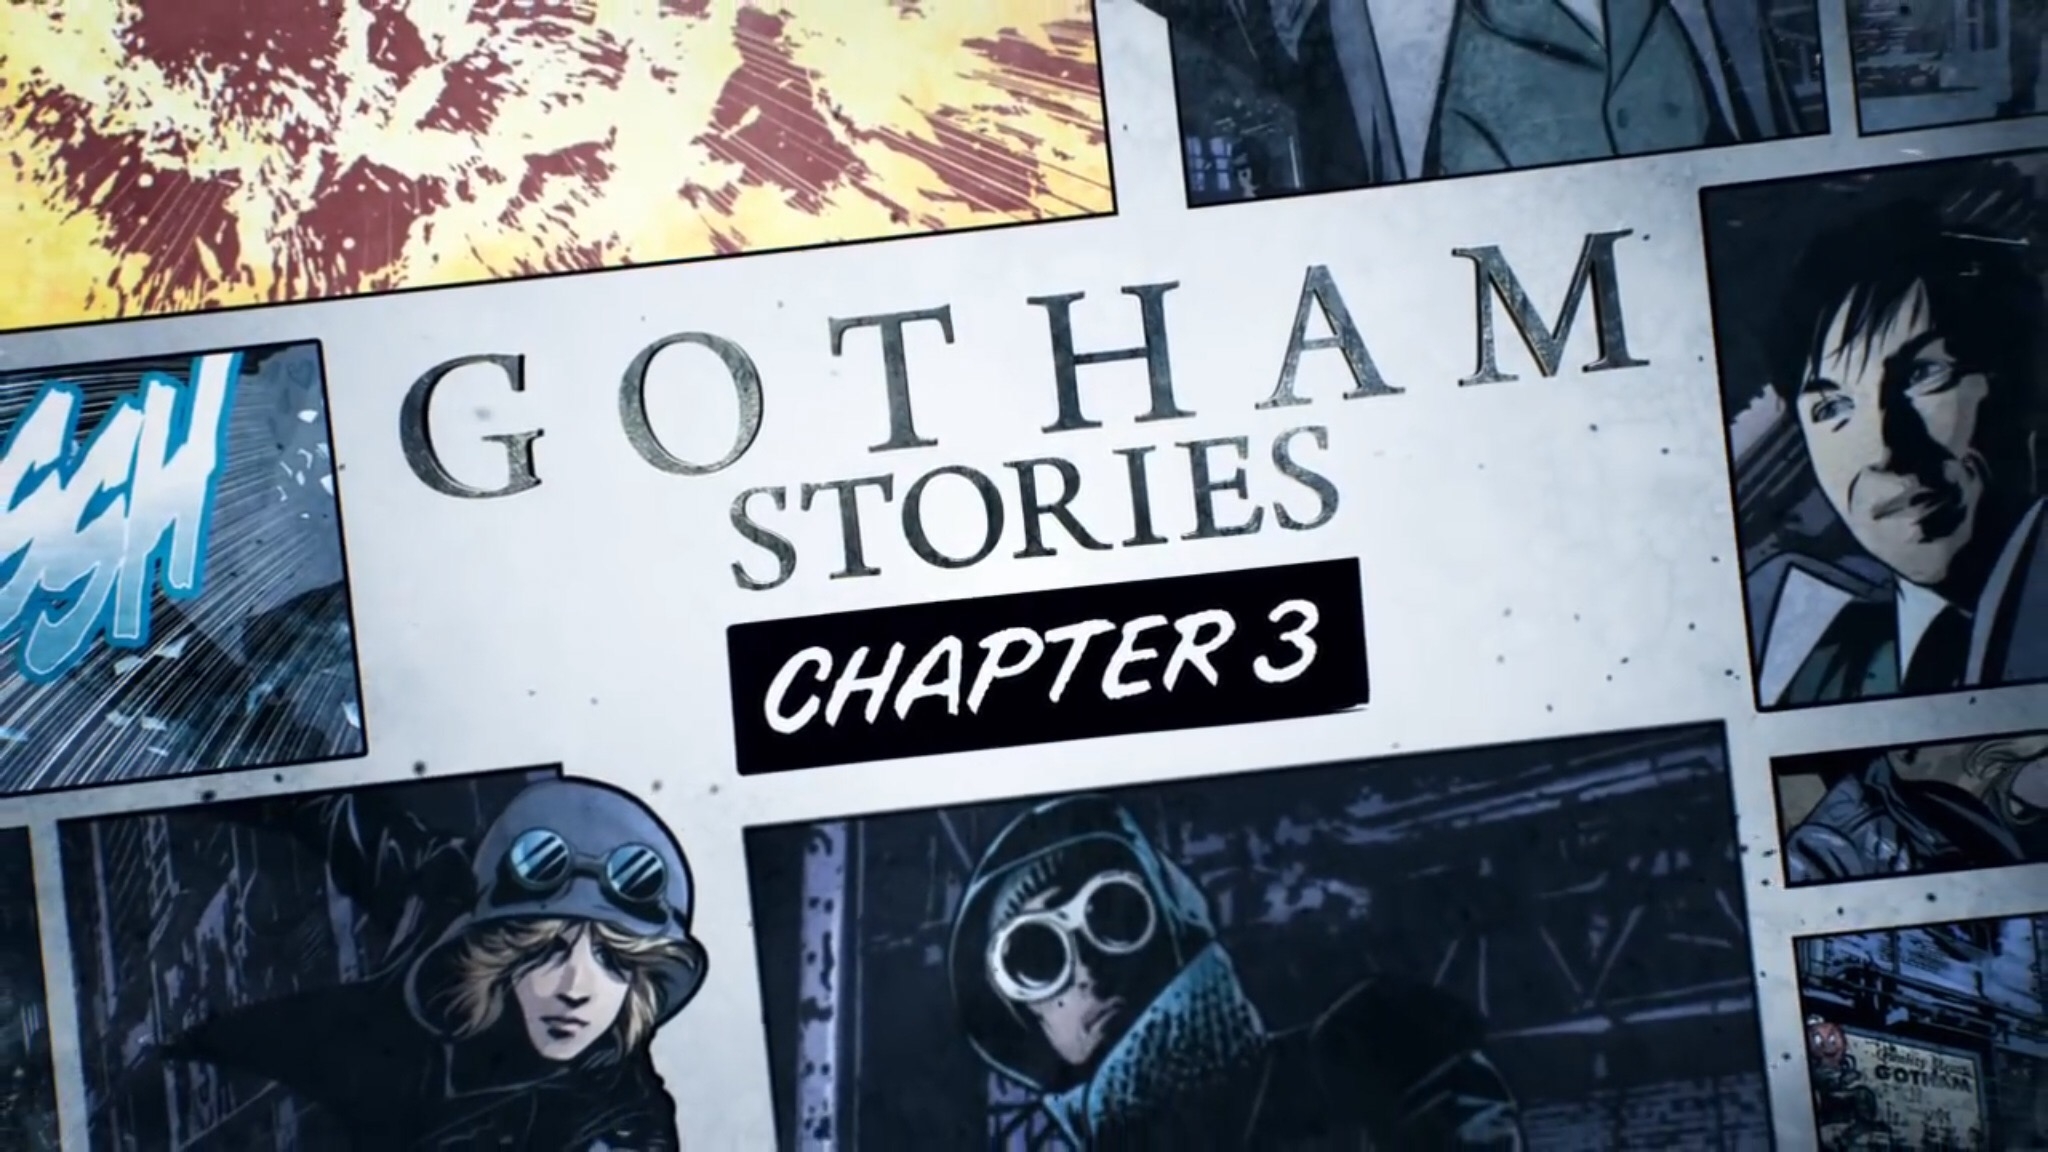 Gotham Stories (Webseries) Episode: Chapter 3